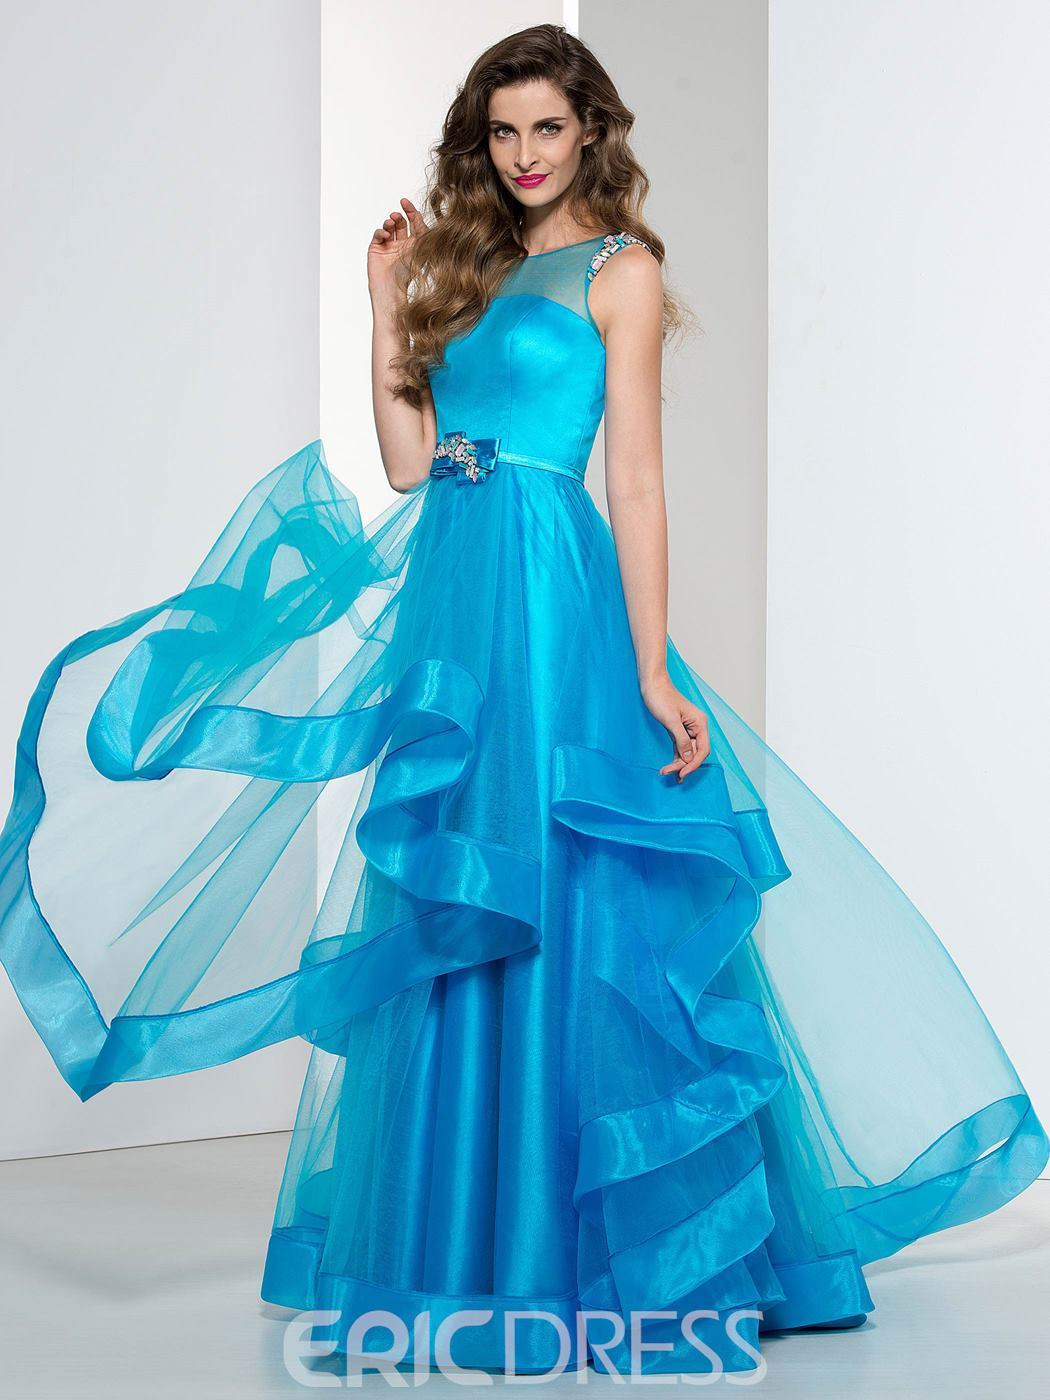 Ericdress A-Line Beading Sashe Tiered Prom Dress